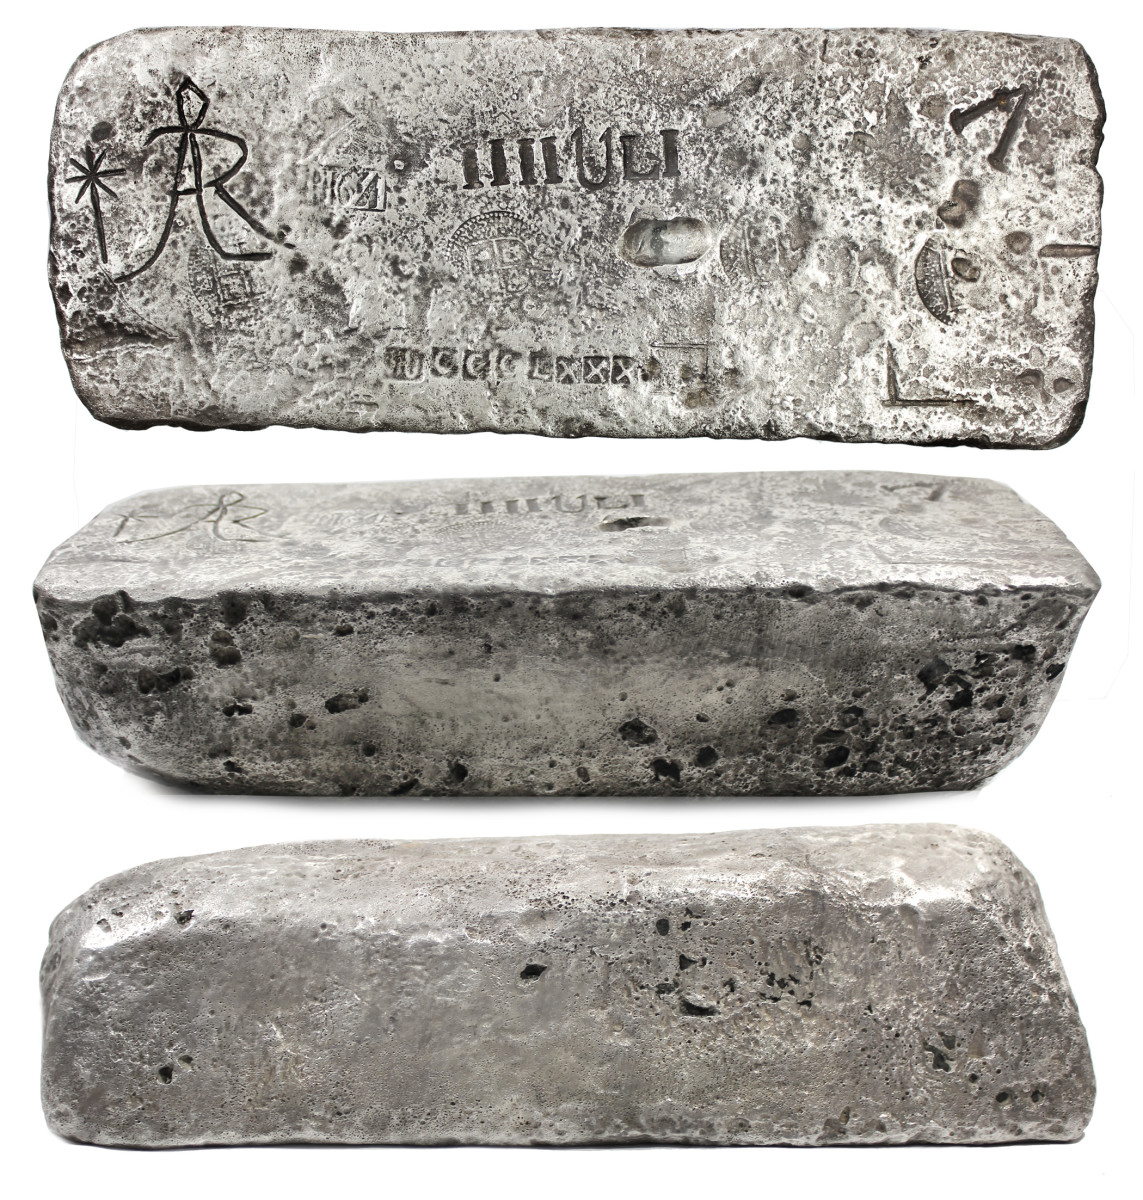 A high-grade silver bar weighing 92 troy pounds, 3.84 troy ounces sold for $57,715.